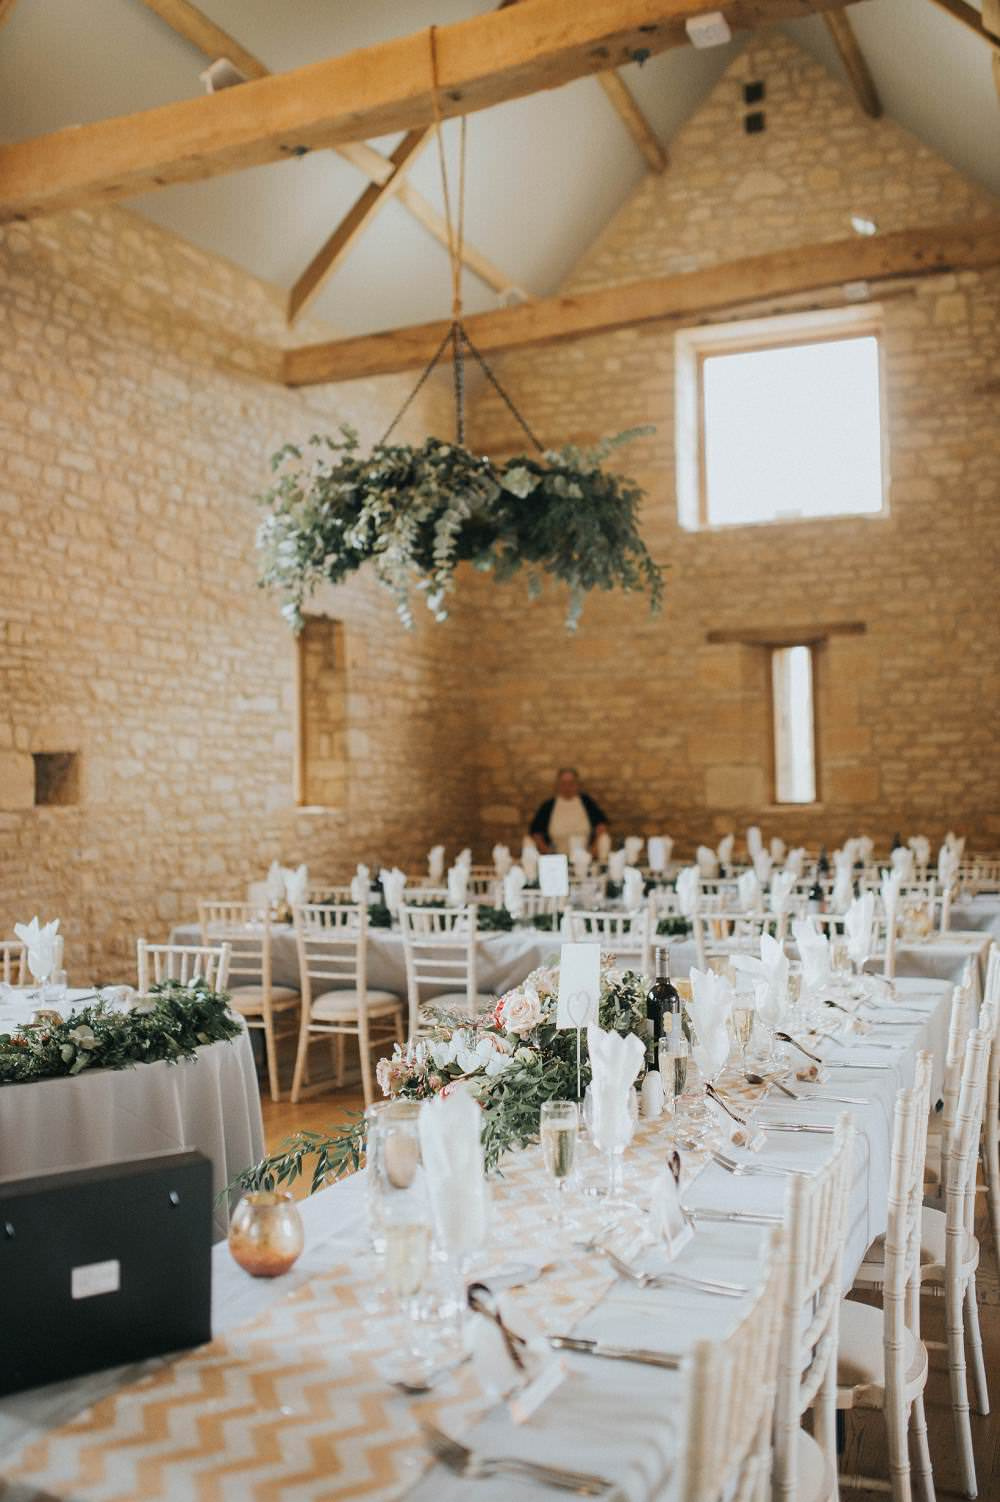 Reception Room Hanging Foliage Chandelier Hoop Wreath Suspended Chairs Eucalyptus Boho Greenery Barn Wedding Kerry Diamond Photography